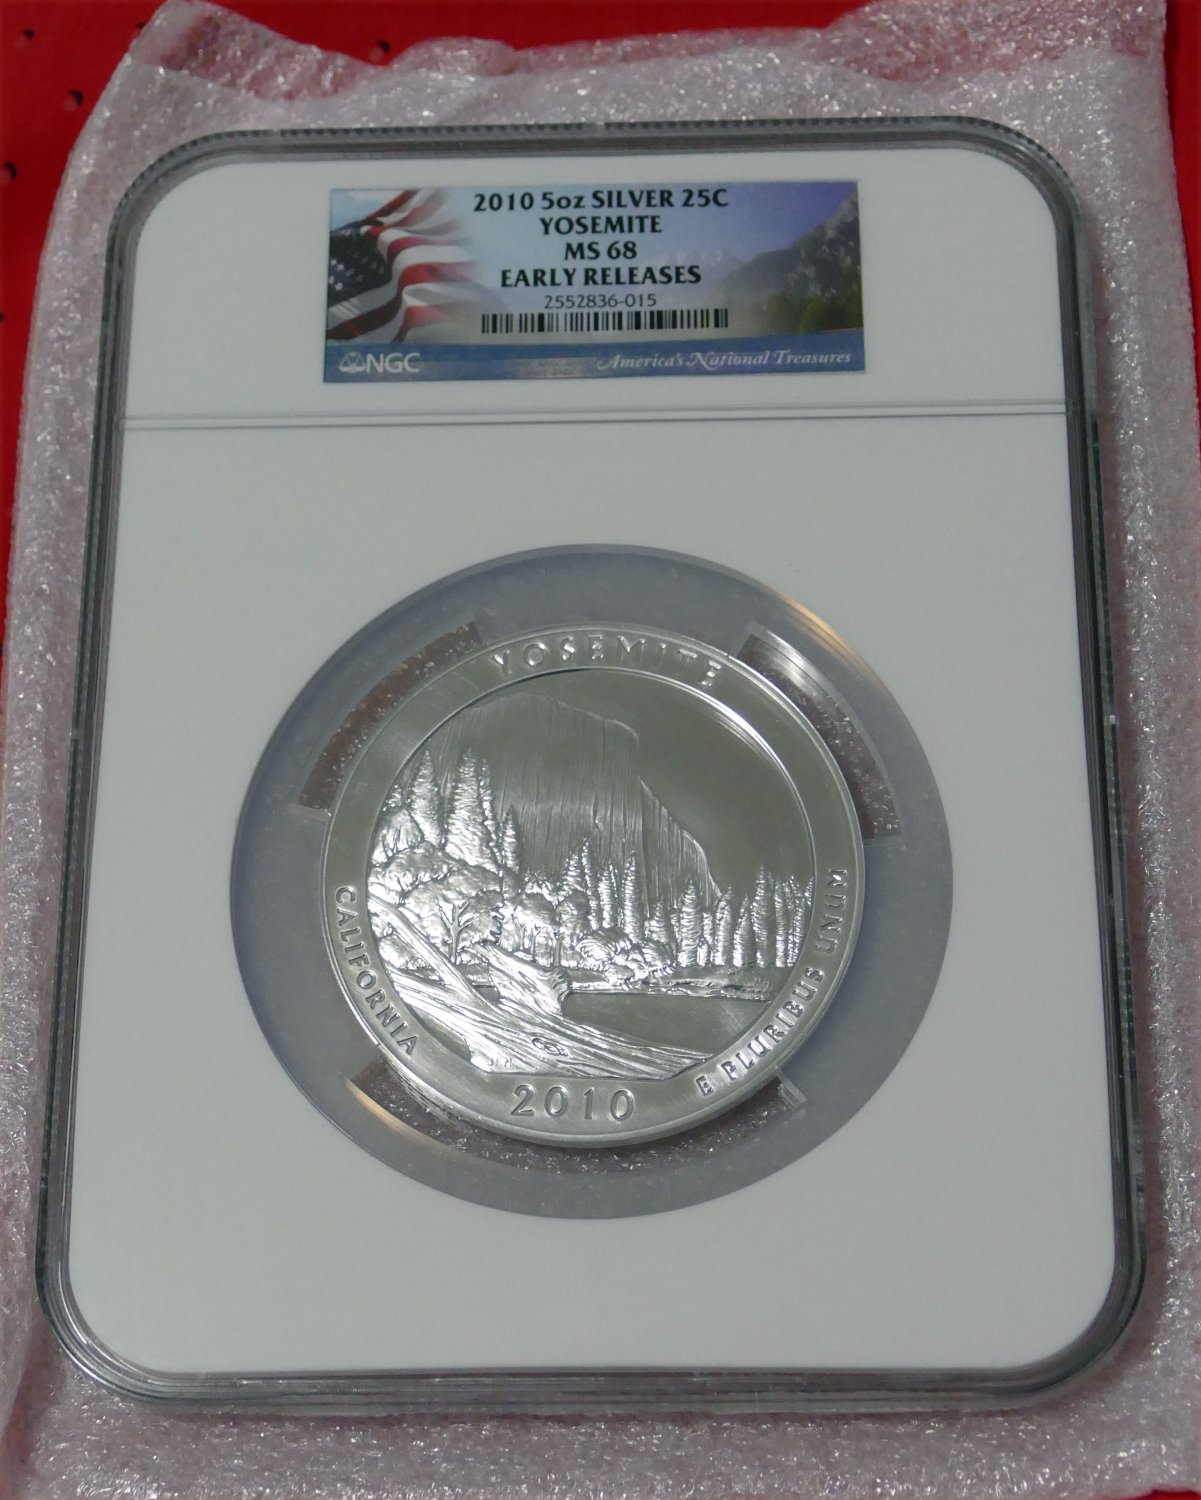 2010 5 oz Silver ATB Yosemite NGC MS69 Early Release